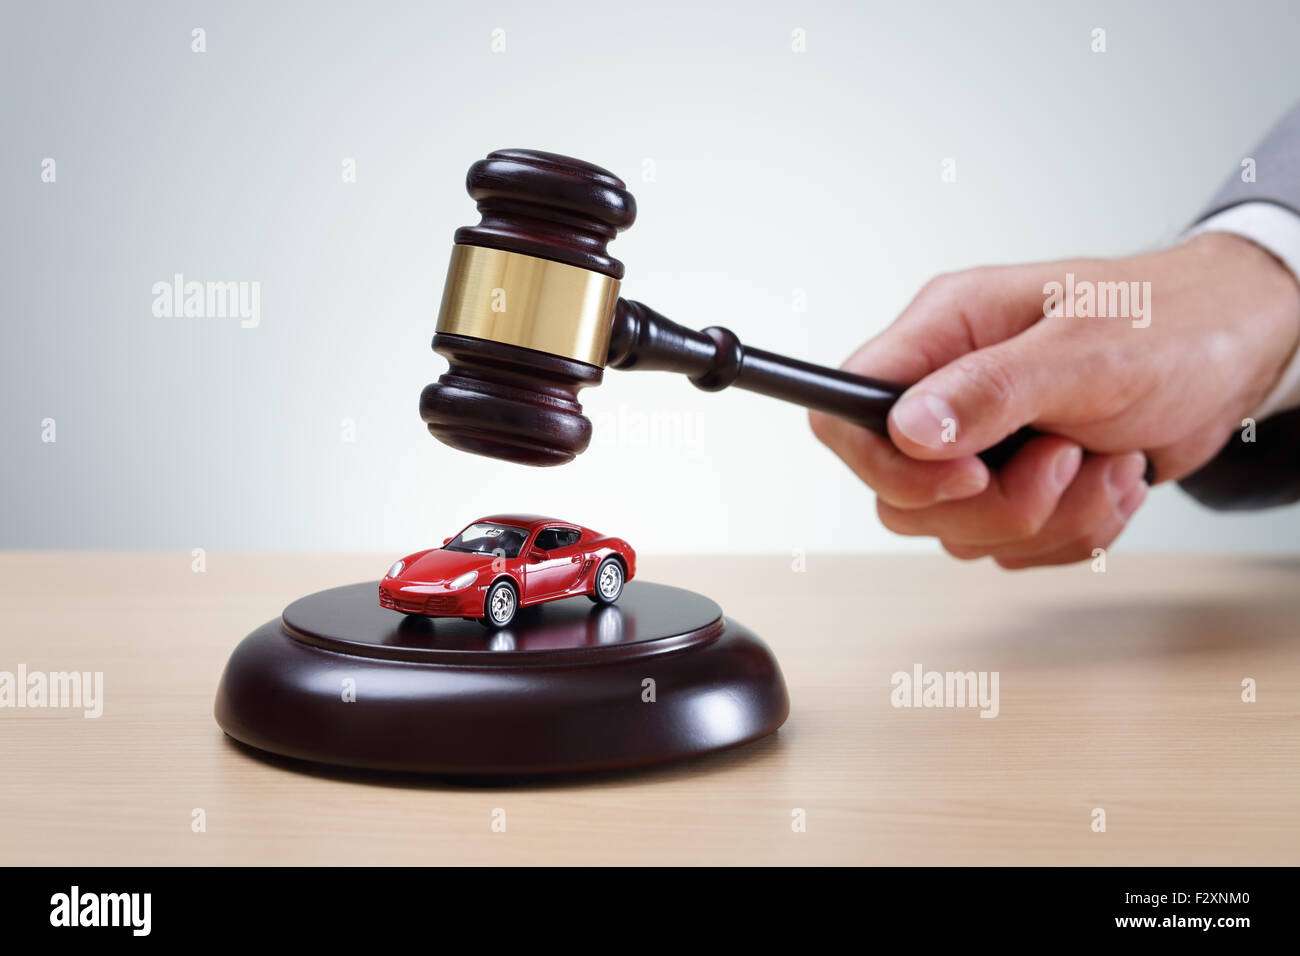 Wooden gavel and red car concept for buying and selling at auction, speeding conviction, court appearance and prosecution Stock Photo